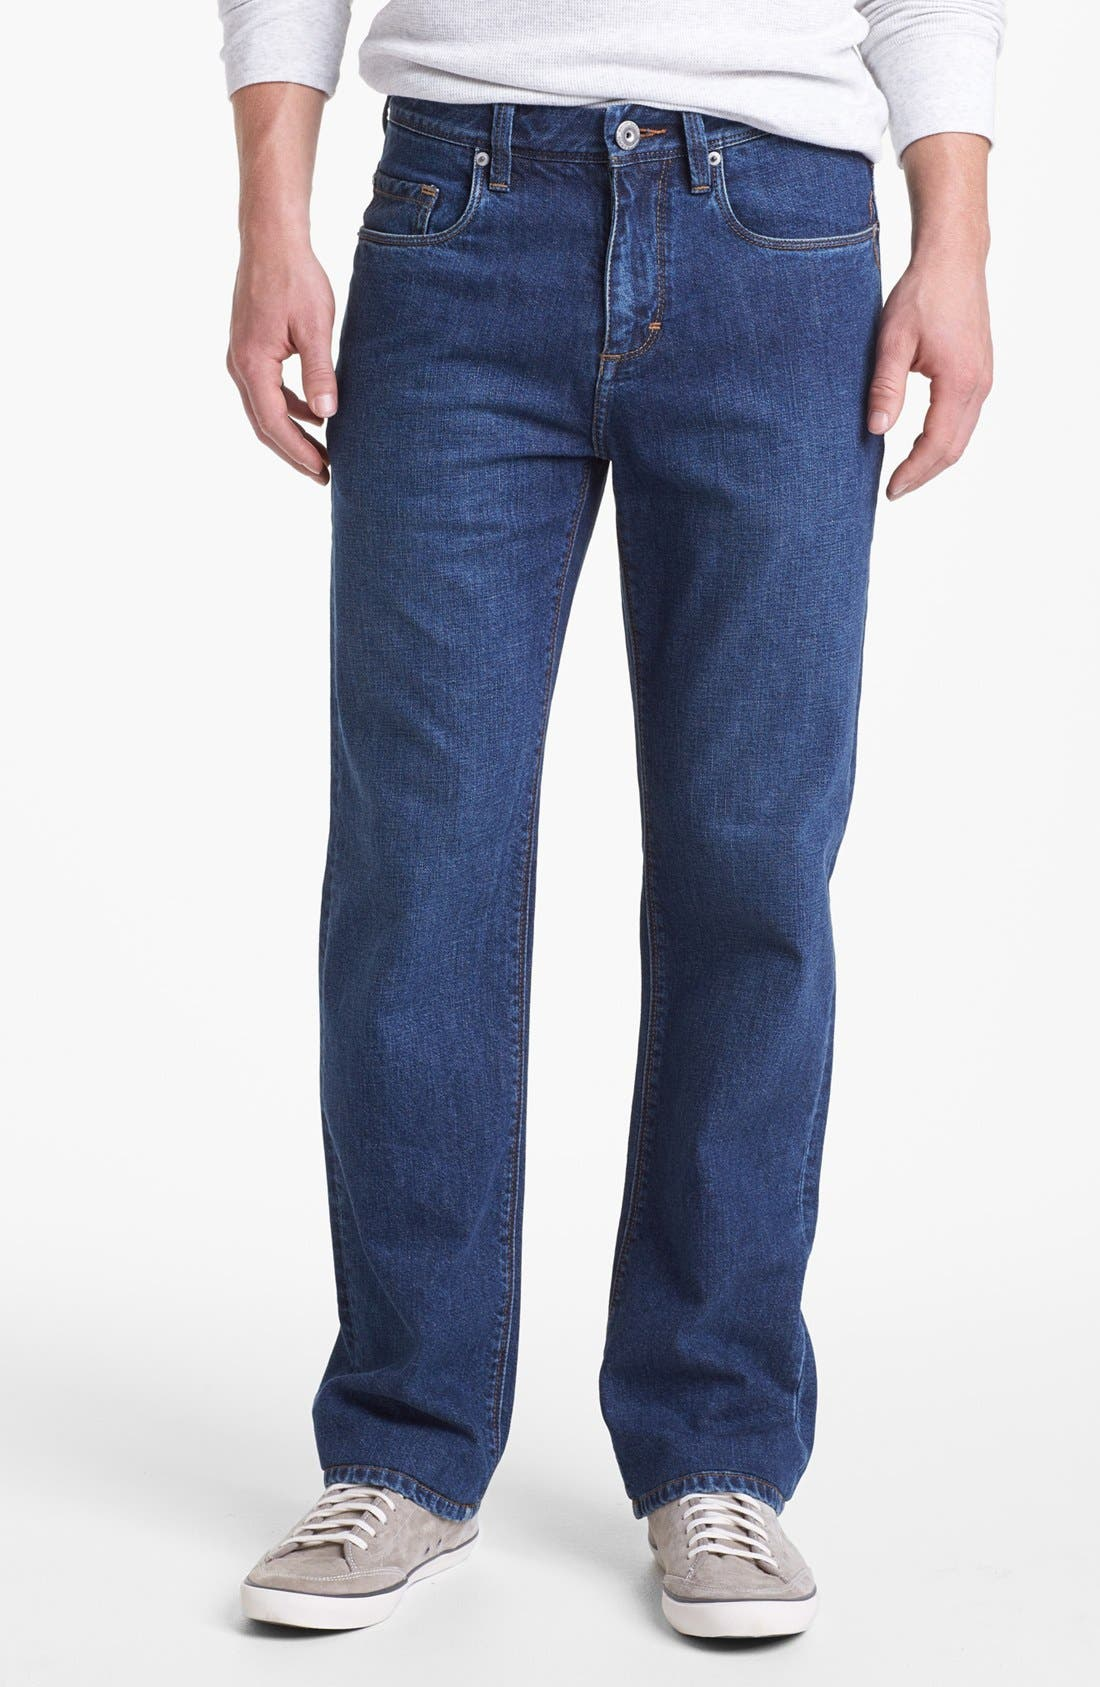 Alternate Image 1 Selected - Tommy Bahama Denim 'Stevie' Standard Fit Jeans (Dark Wash)